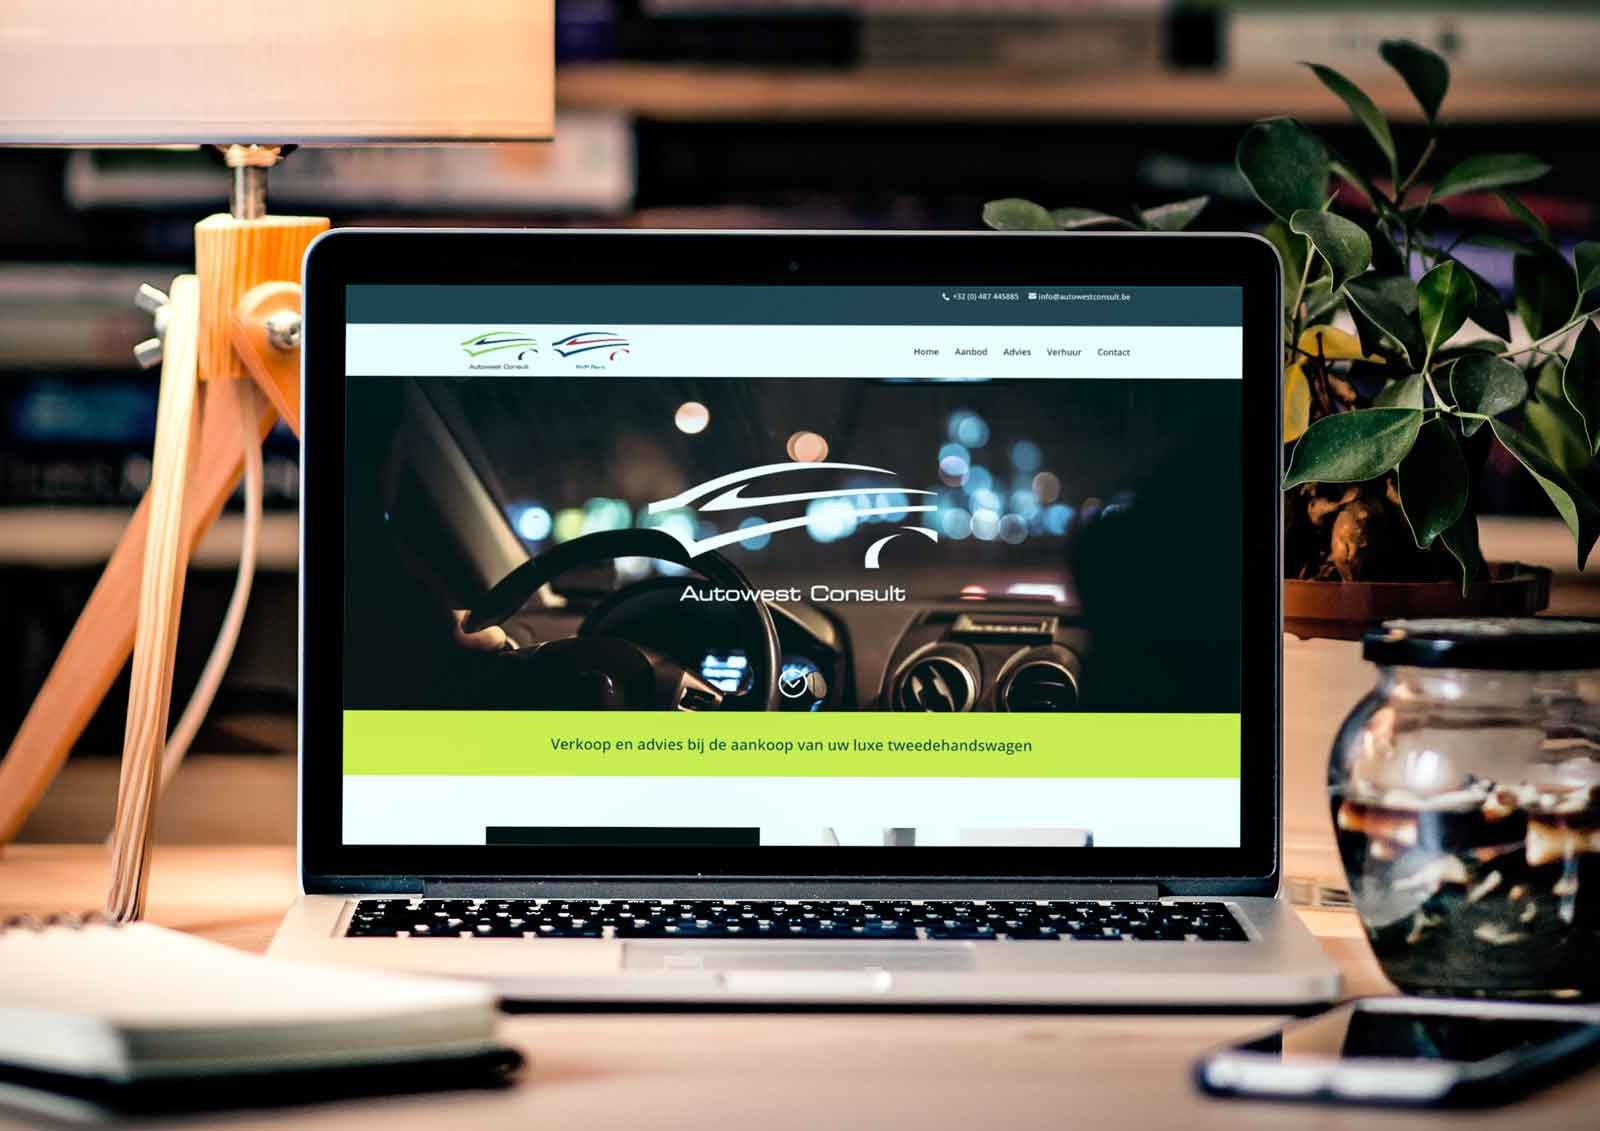 Webdesign-bureau-Waregem-Mioo-Design-website-ontwerp-website-ontwikkeling-Zoekmachine-optimalisatie-SEO-Autowest-Consult